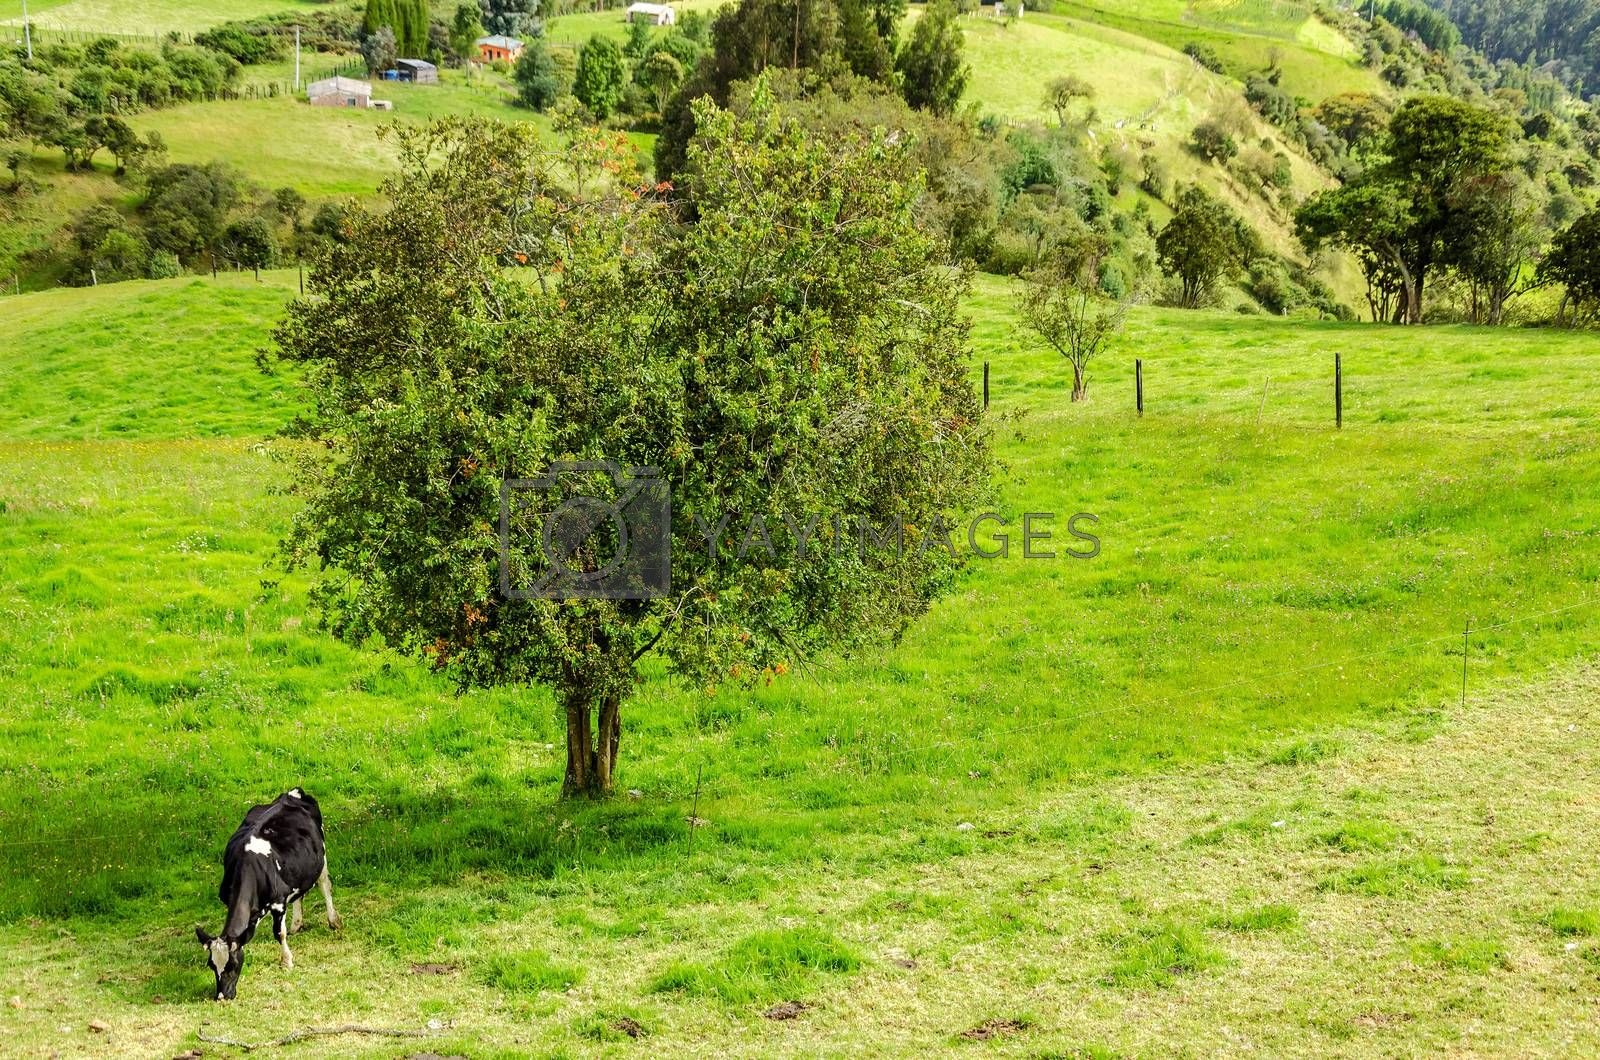 A lone cow and tree in the Colombian countryside in Cundinamarca, Colombia